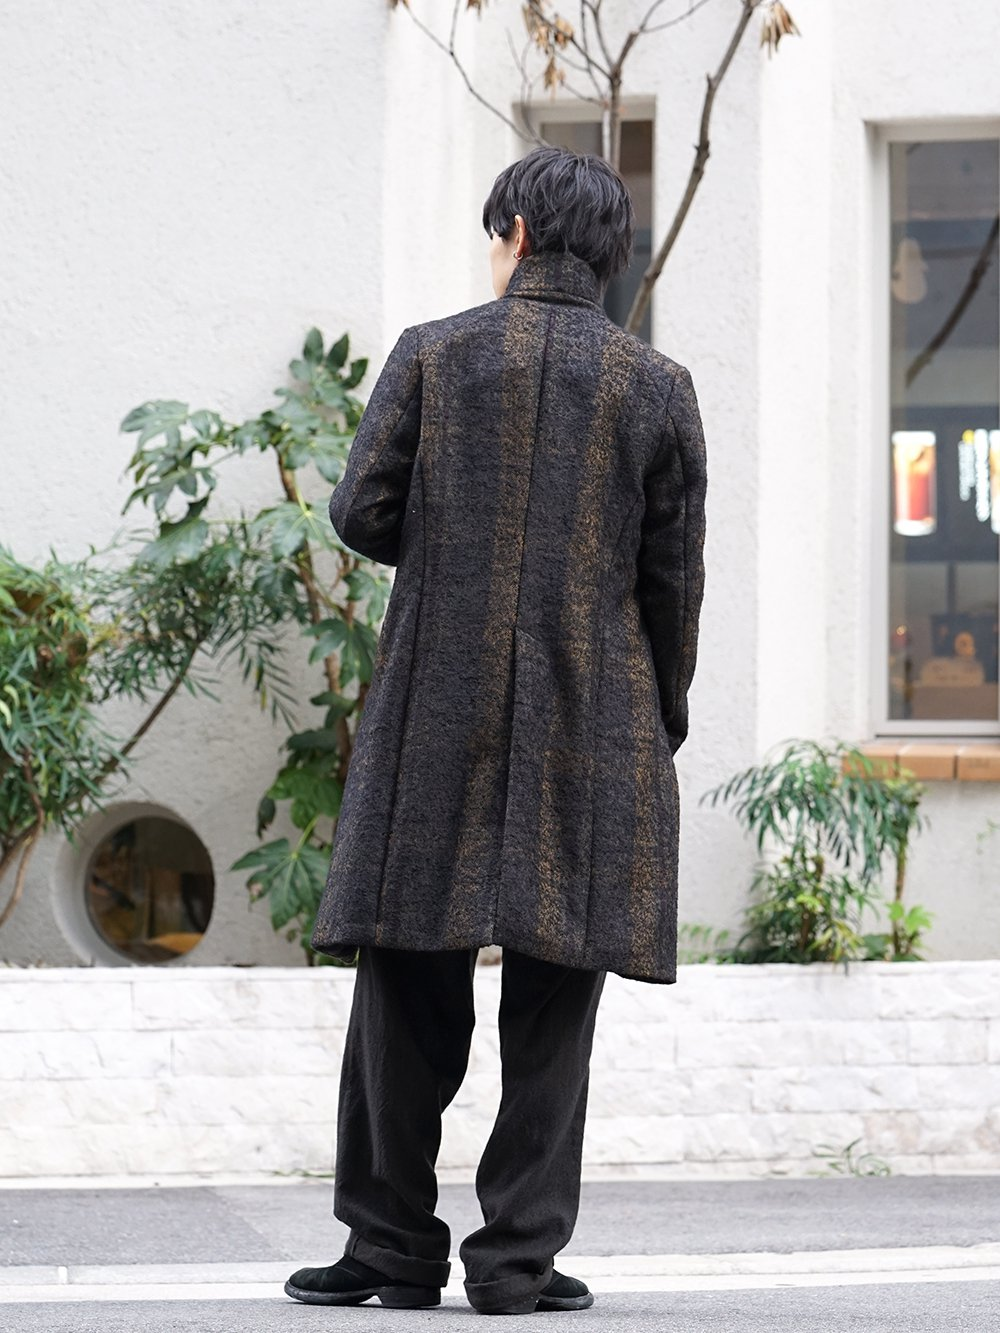 hannibal 19-20AW Needle Punch Check Coat Style - 1-003